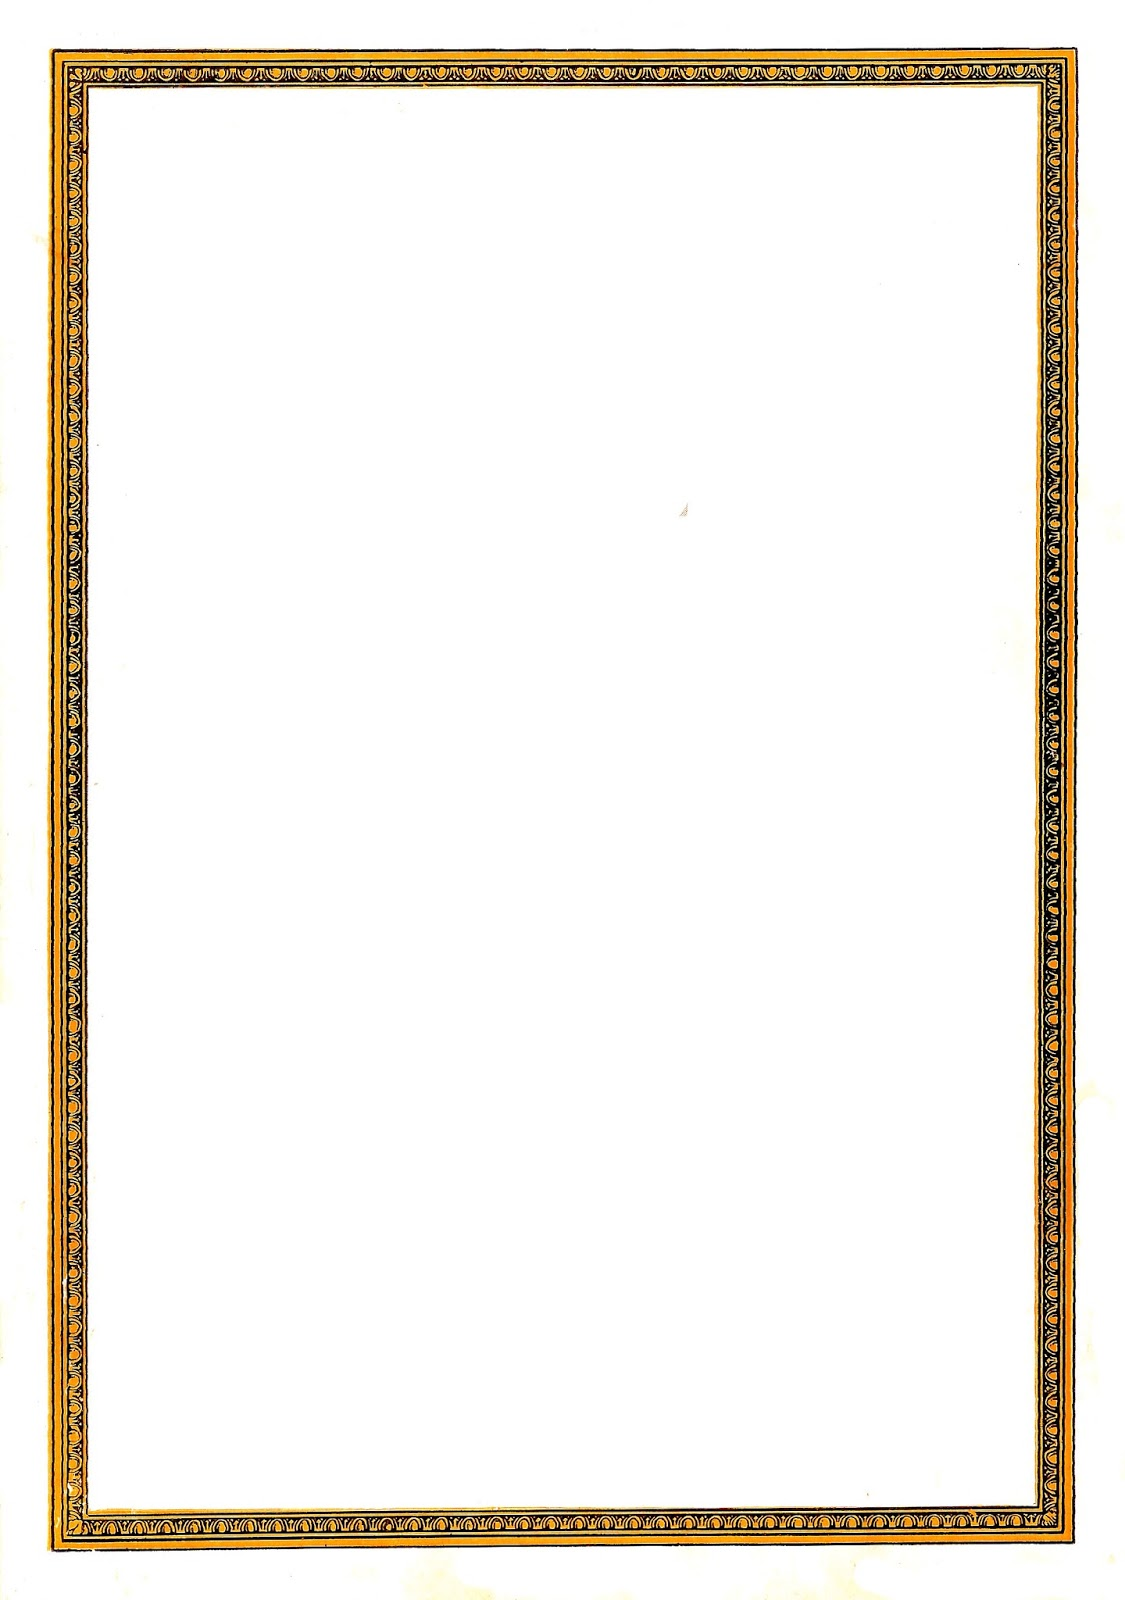 Antique Images: Decorative Frame Digital Clip Art Vintage Border Design